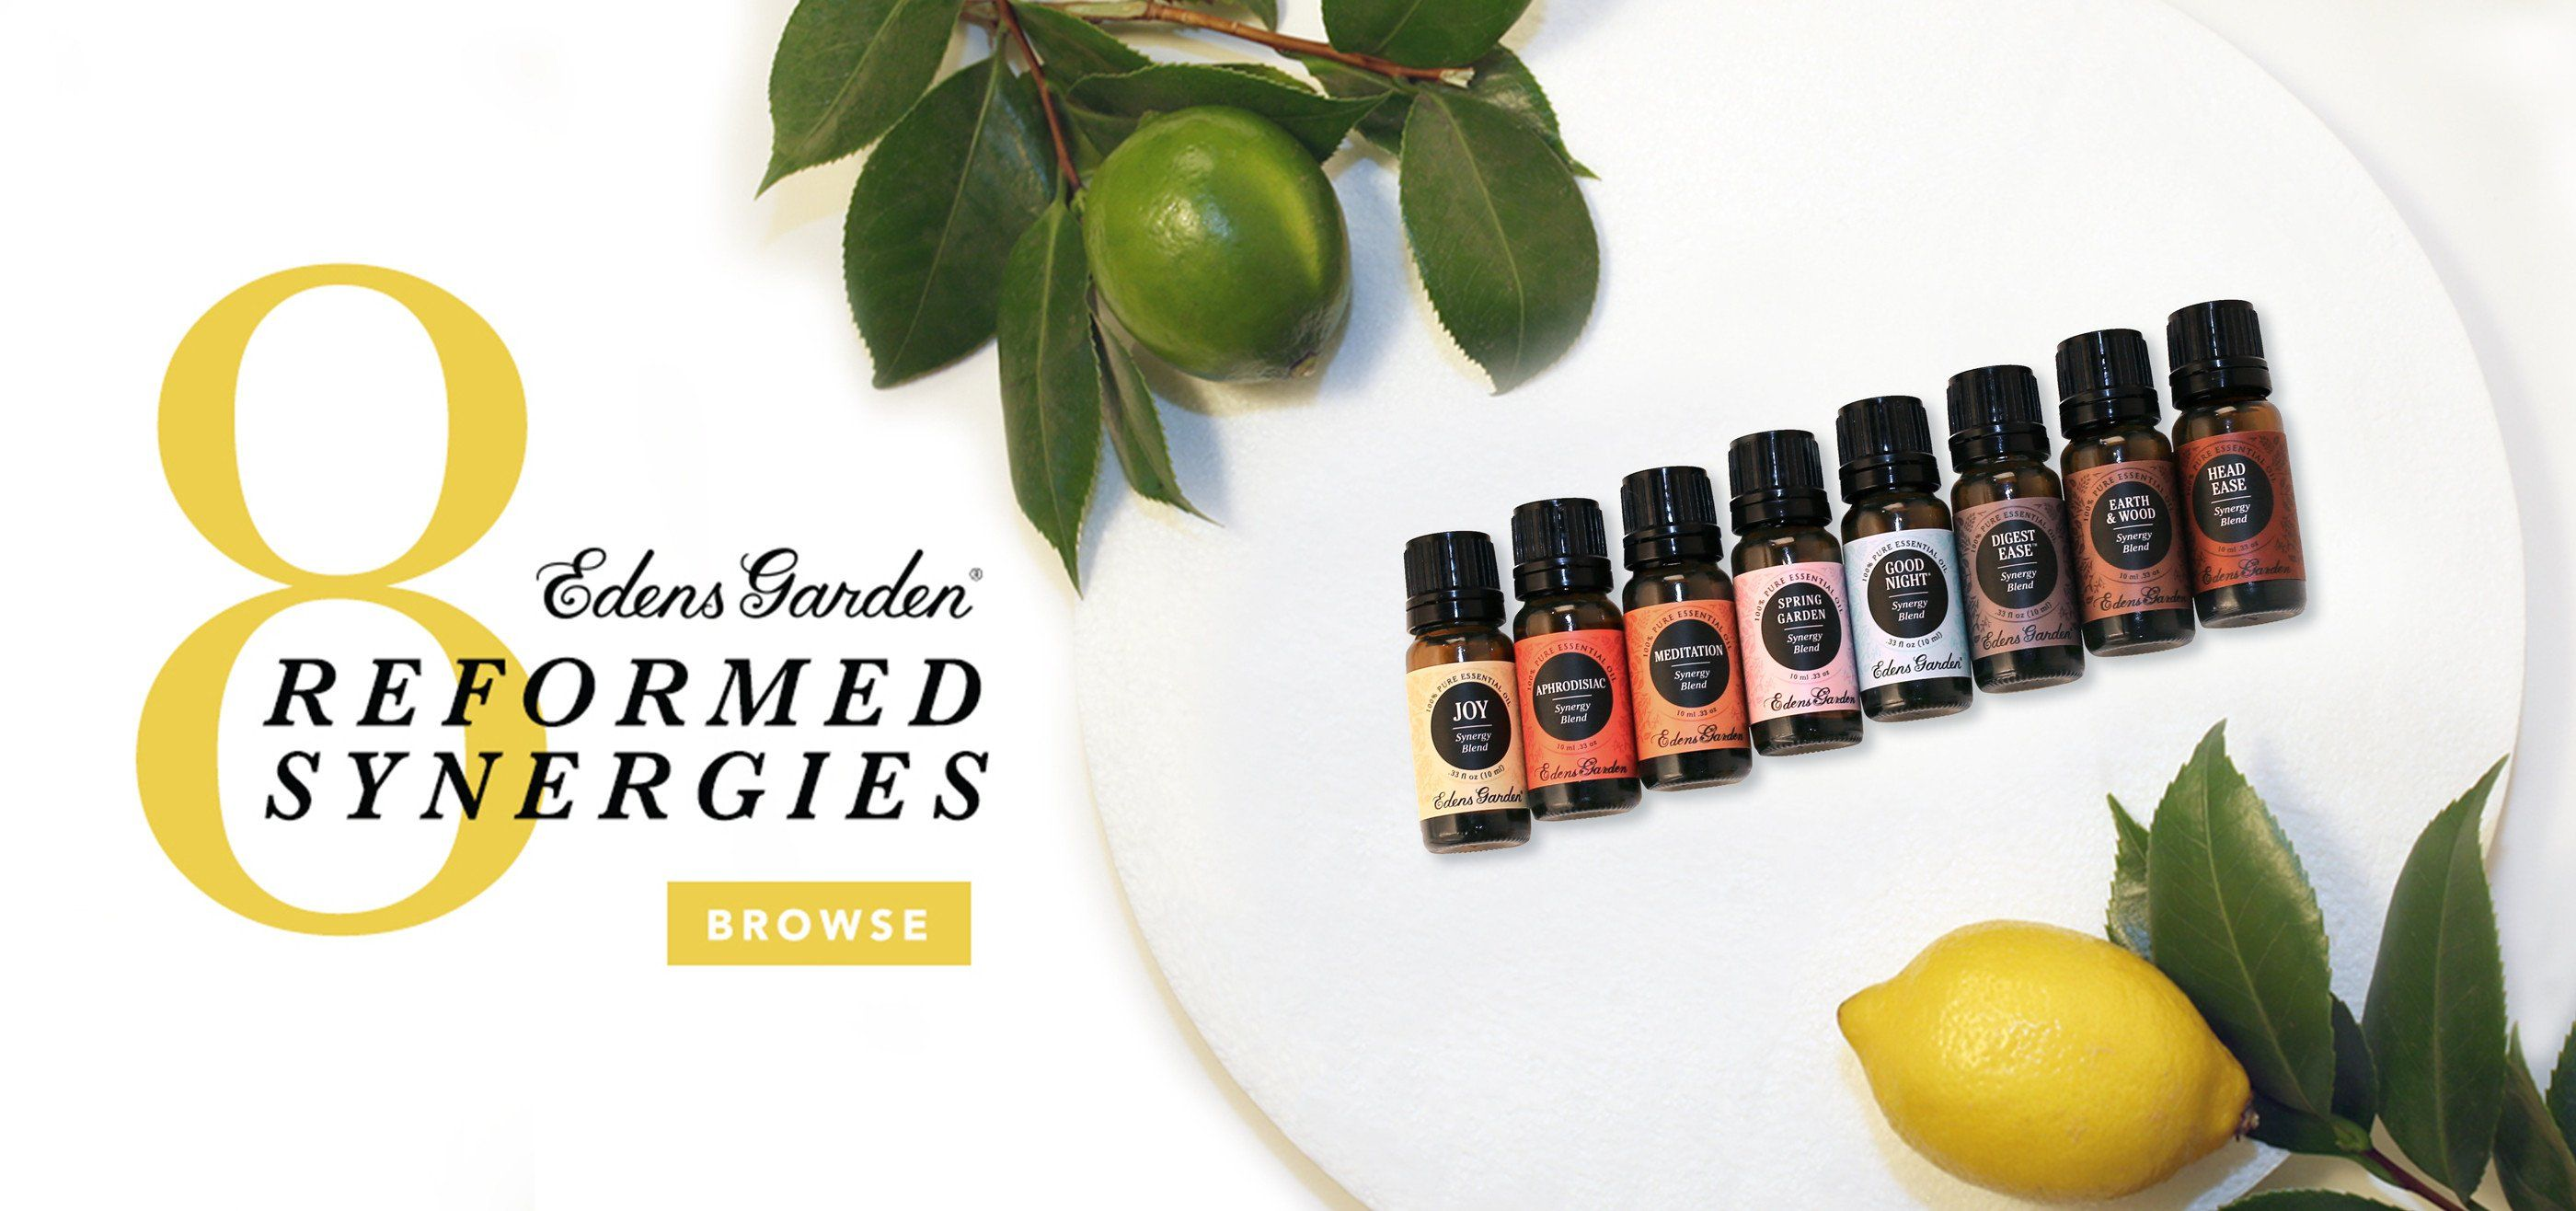 Try this brand of oils!! Edens garden essential oils